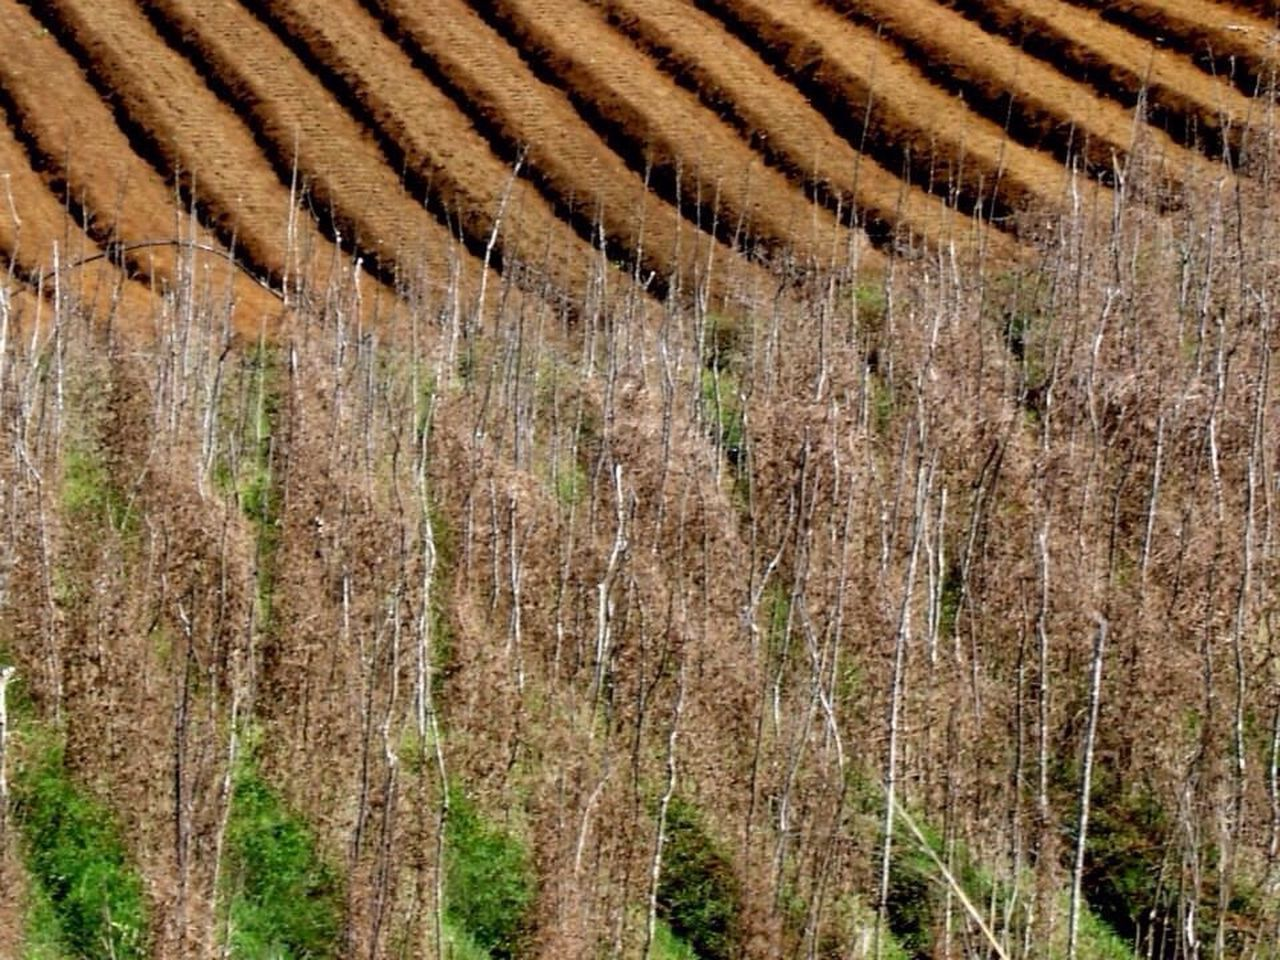 agriculture, field, farm, rural scene, nature, landscape, winemaking, outdoors, growth, day, no people